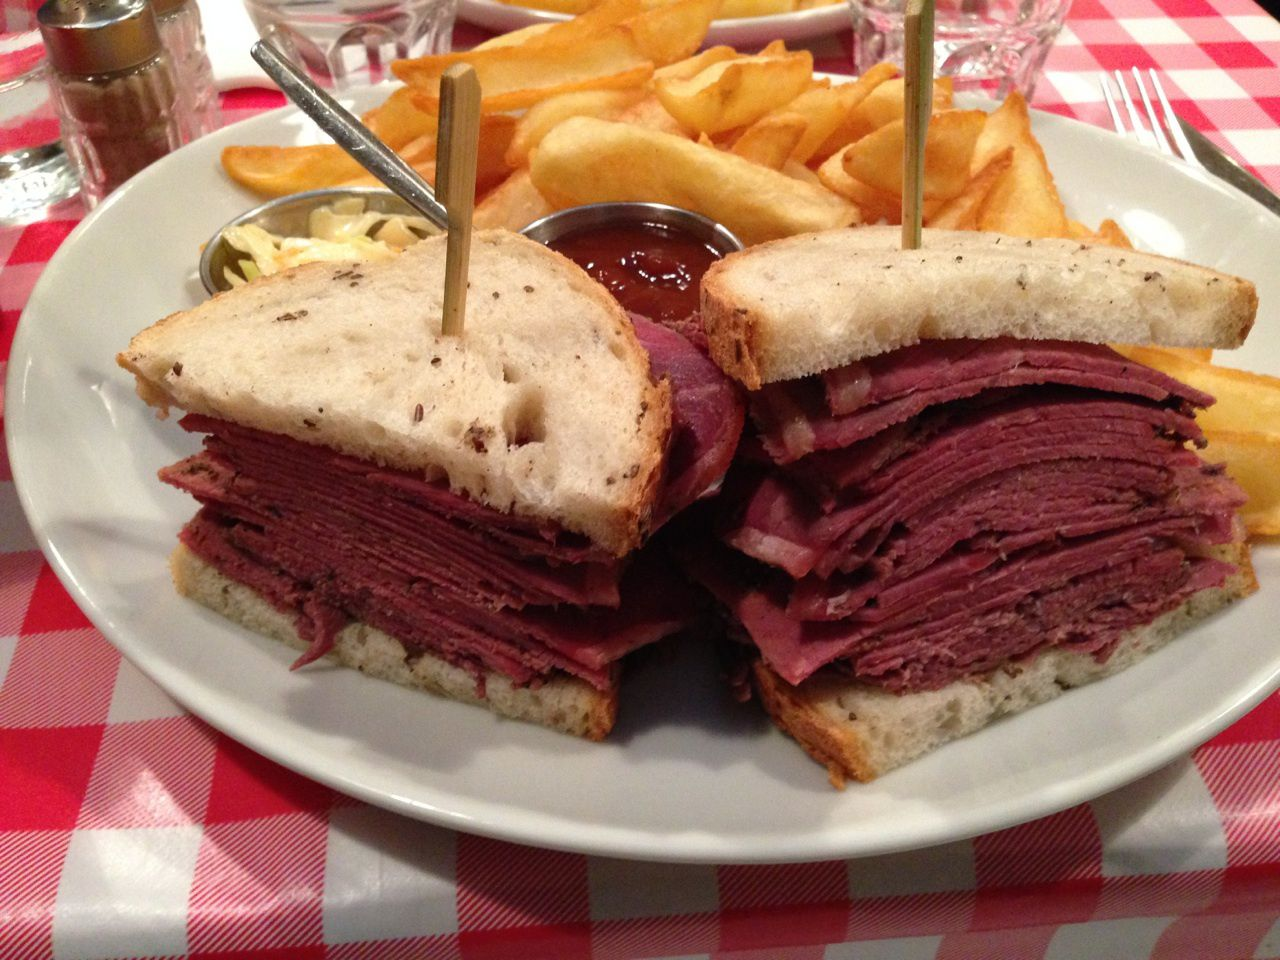 The sandwich au Pastrami